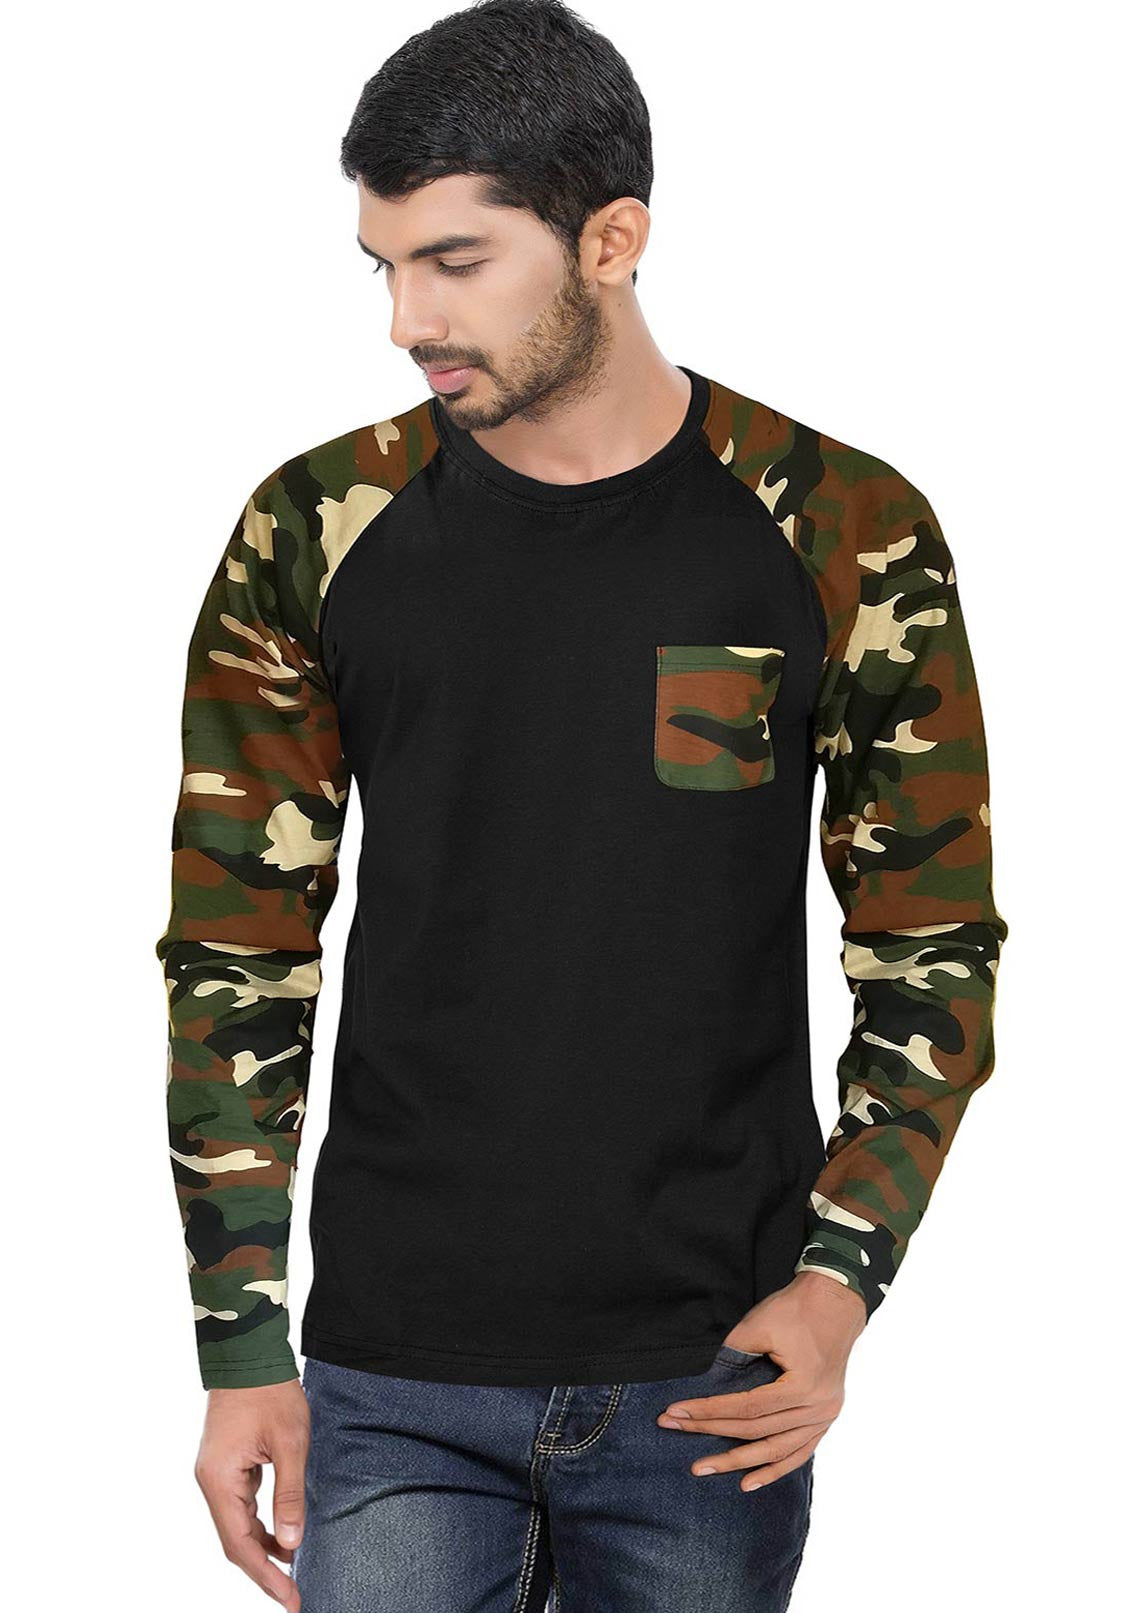 Army camouflage raglan full sleeves t shirt printed camo for Full sleeves t shirts for men